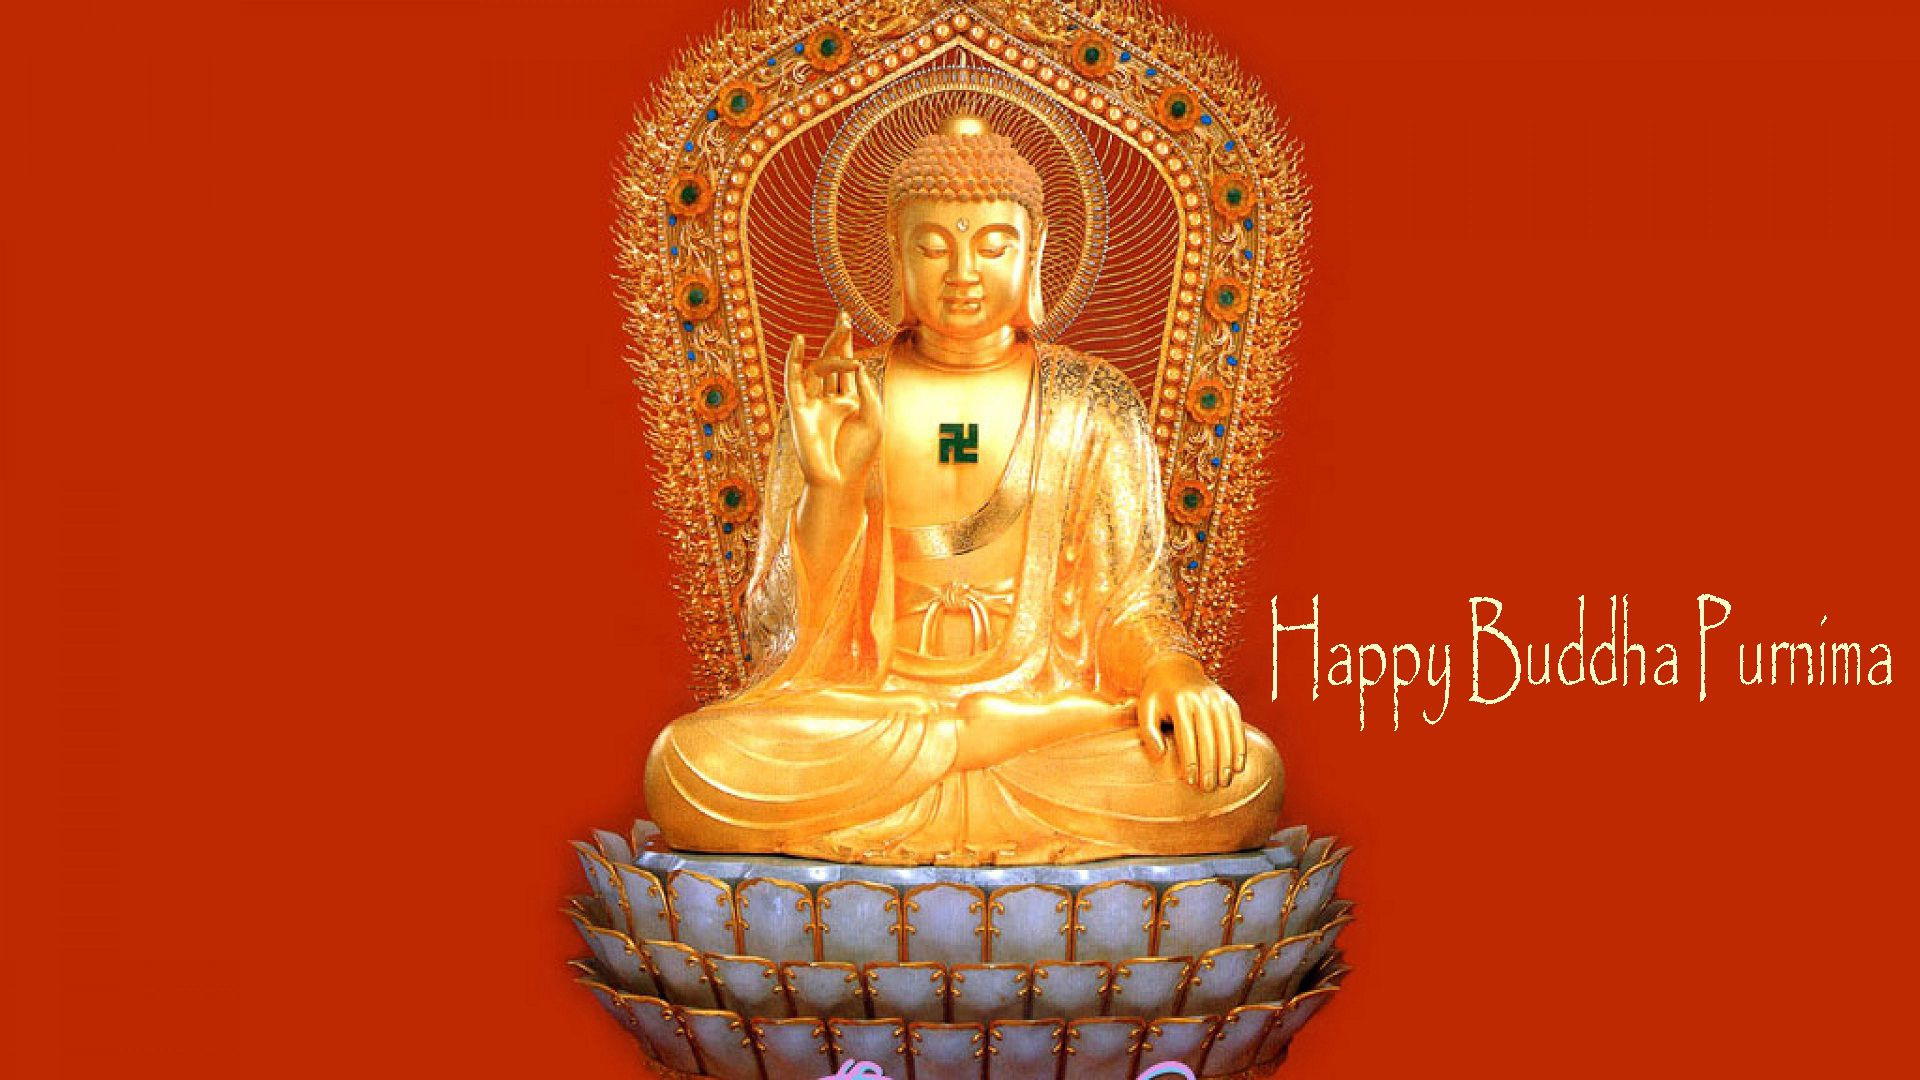 Buddha Purnima Hd Images Photo Pic Wallpapers Pictures